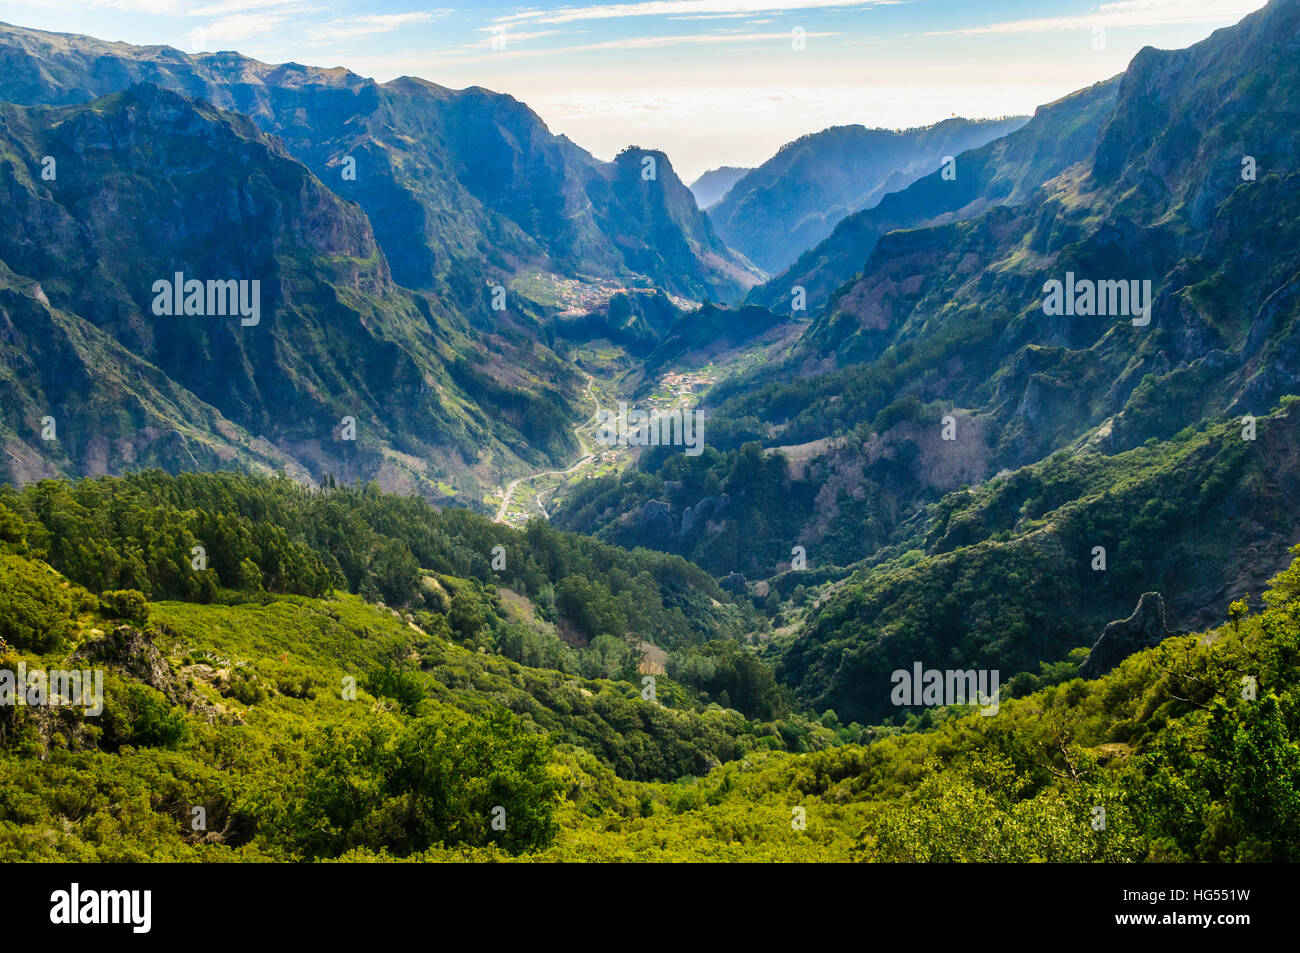 View of the Curral das Freiras valley from the central ridge of Madeira - Stock Image